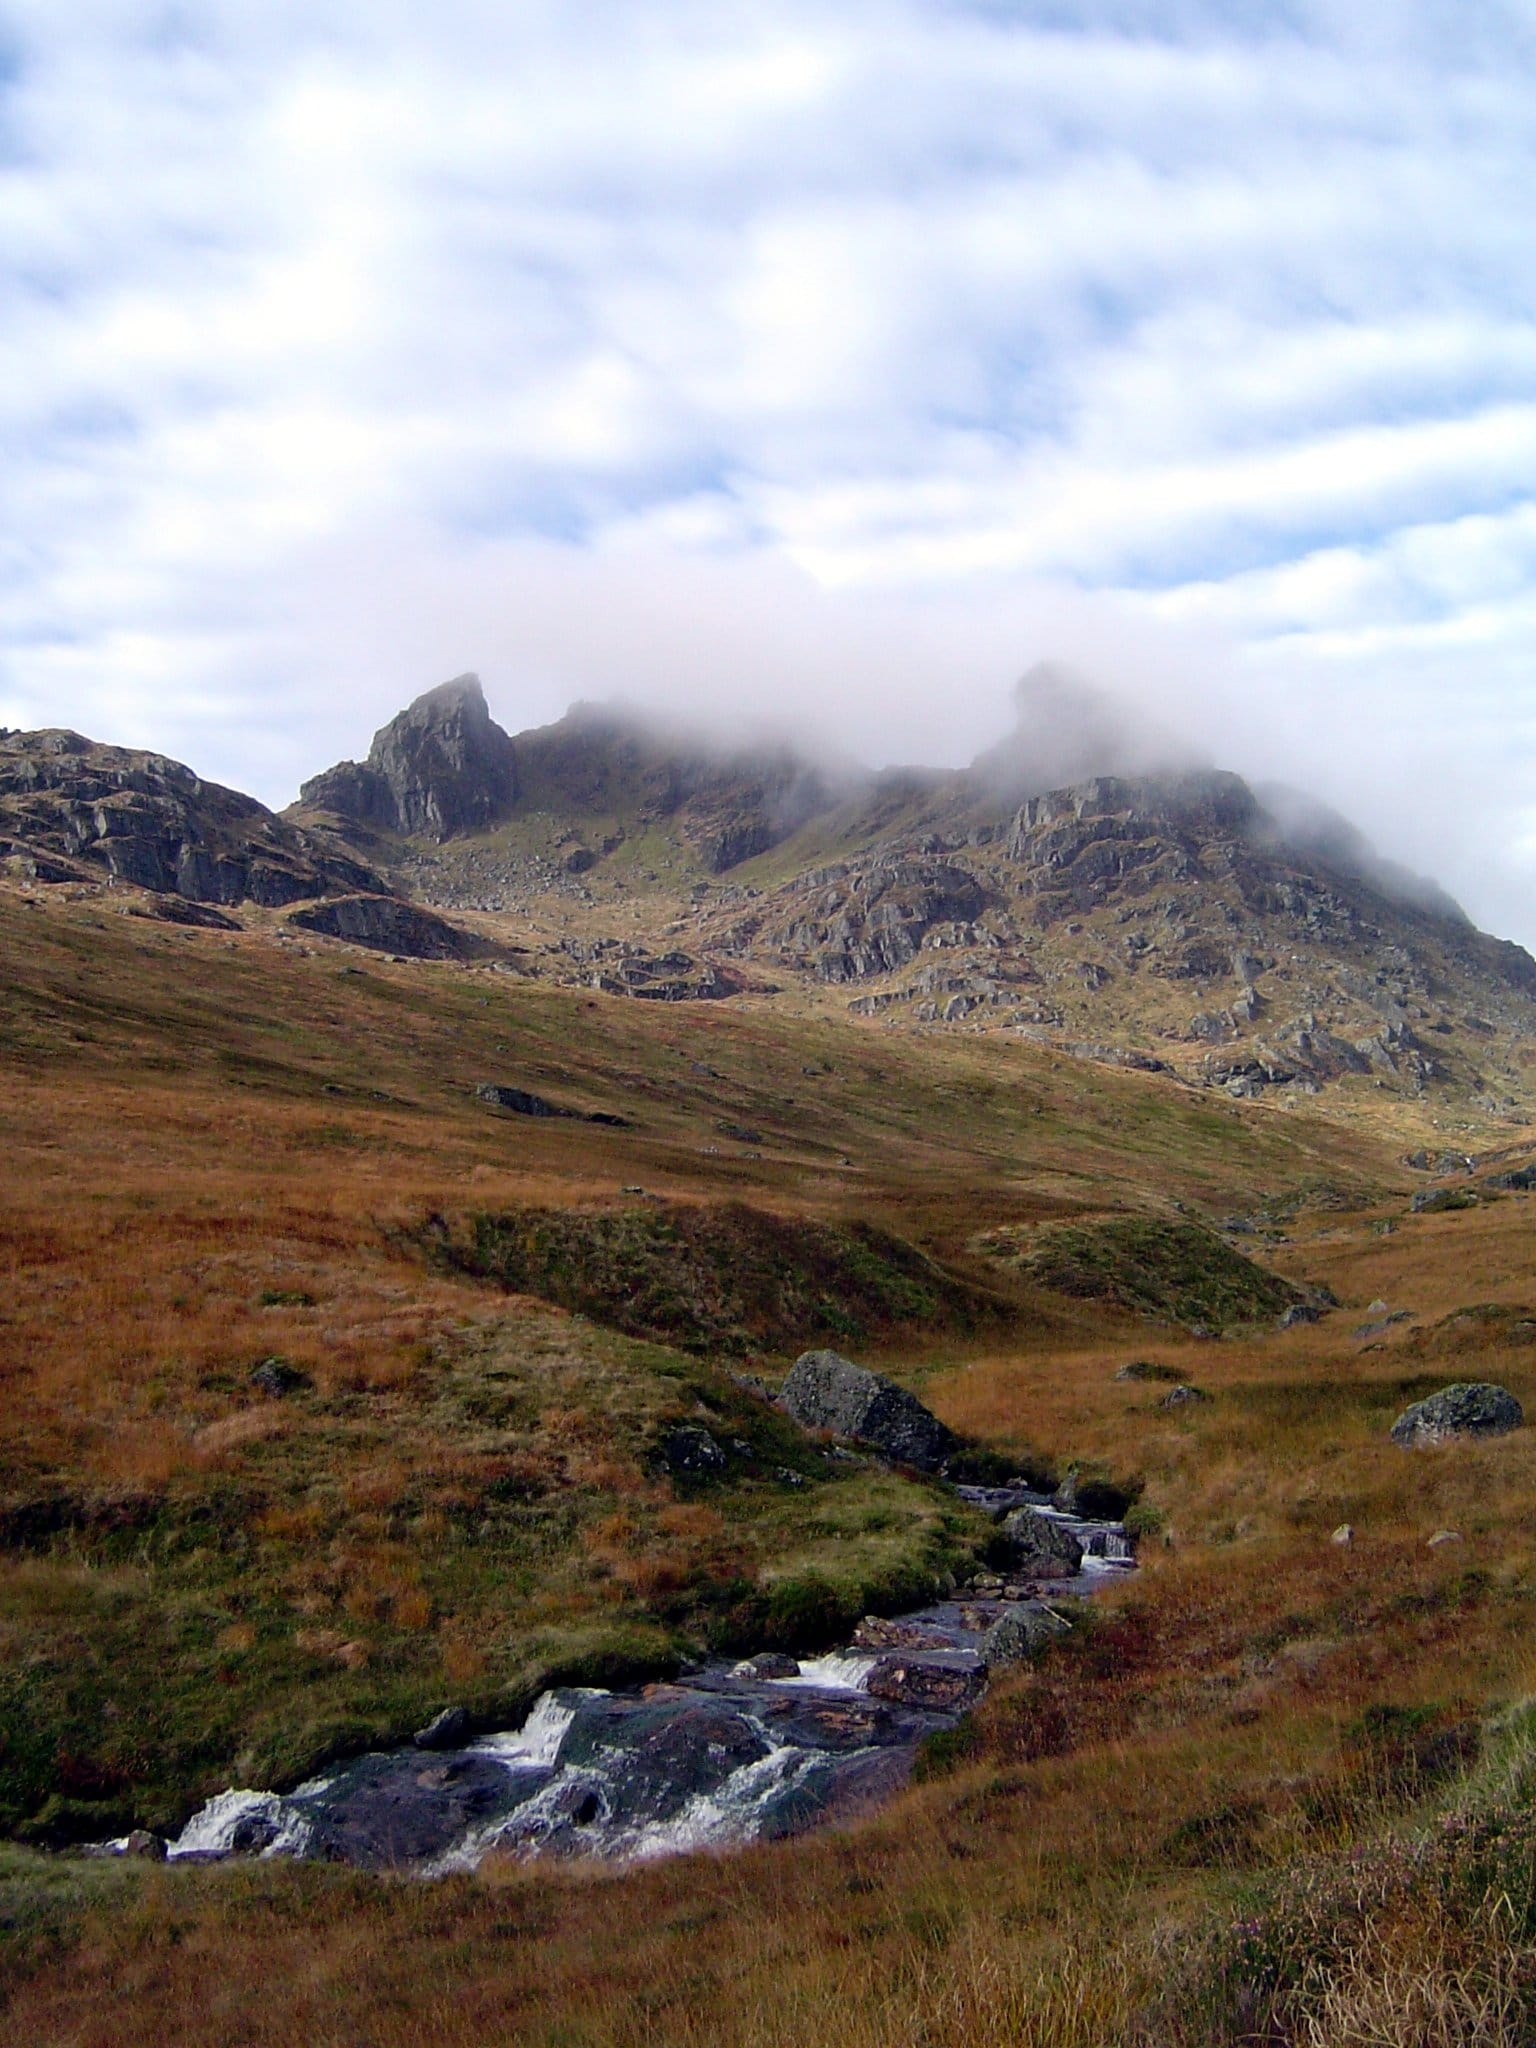 """The Cobbler / Ben Arthur"" by Dr. Nils Wiese, licensed CC BY-NC 2.0."